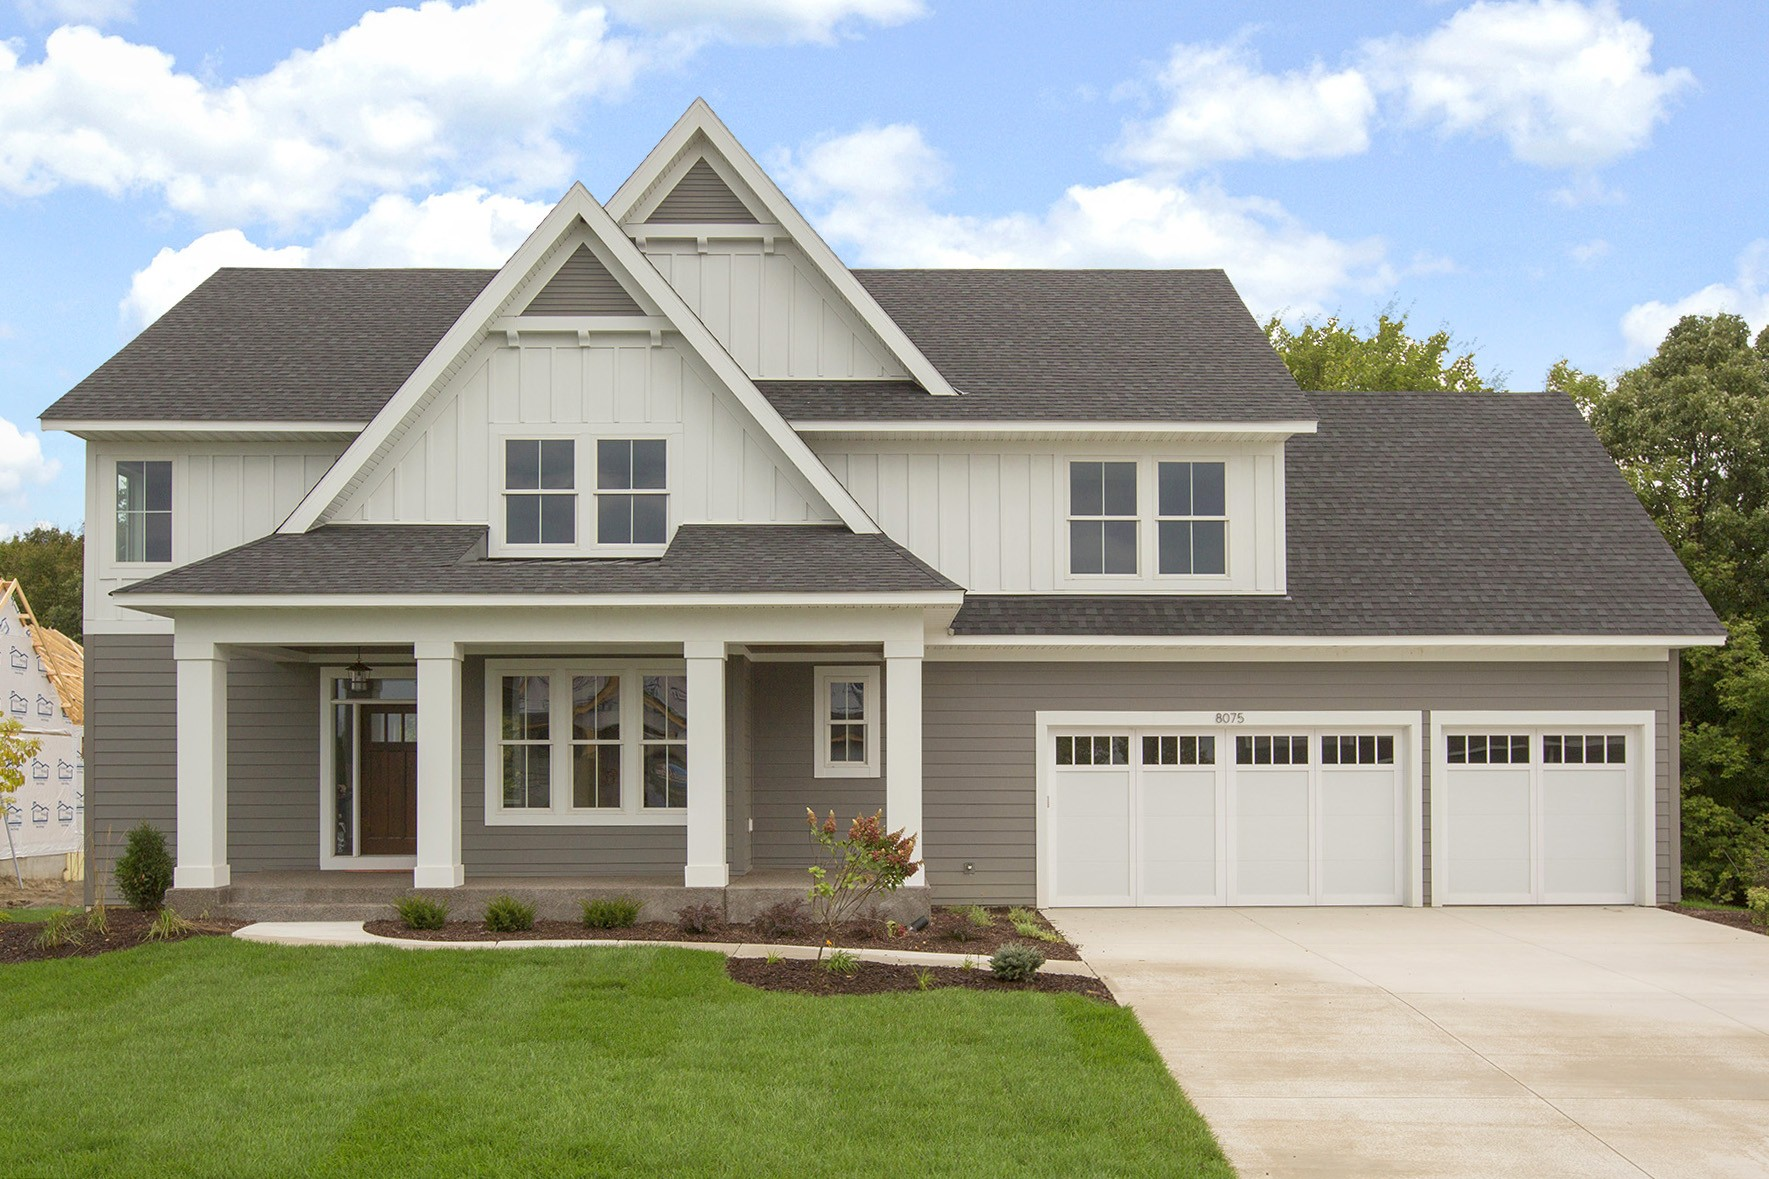 8075 Yellowstone Lane N • Maple Grove   Click on image for a complete gallery for this home.